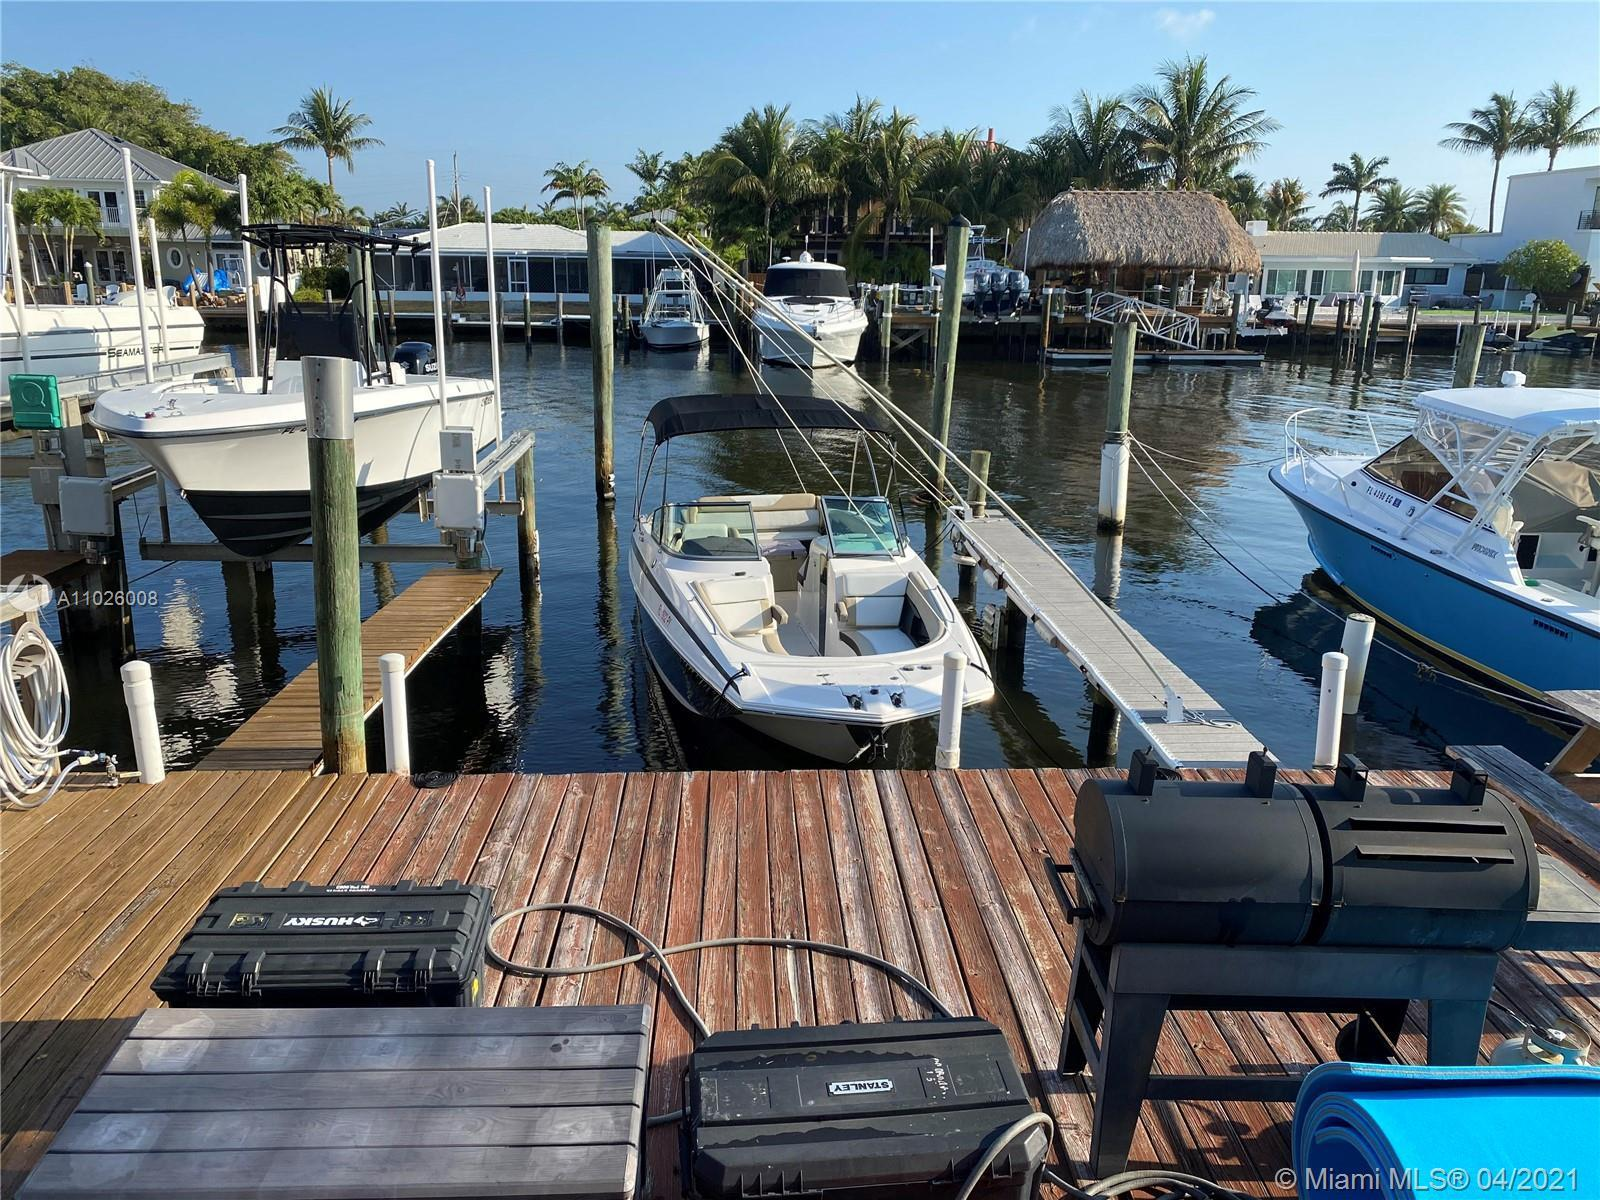 RARELY AVAILABLE SINGLE FAMILY HOME IN AN EXCLUSIVE WATERFRONT COMMUNITY WITH PRIVATE DOUBLE DOCK! T